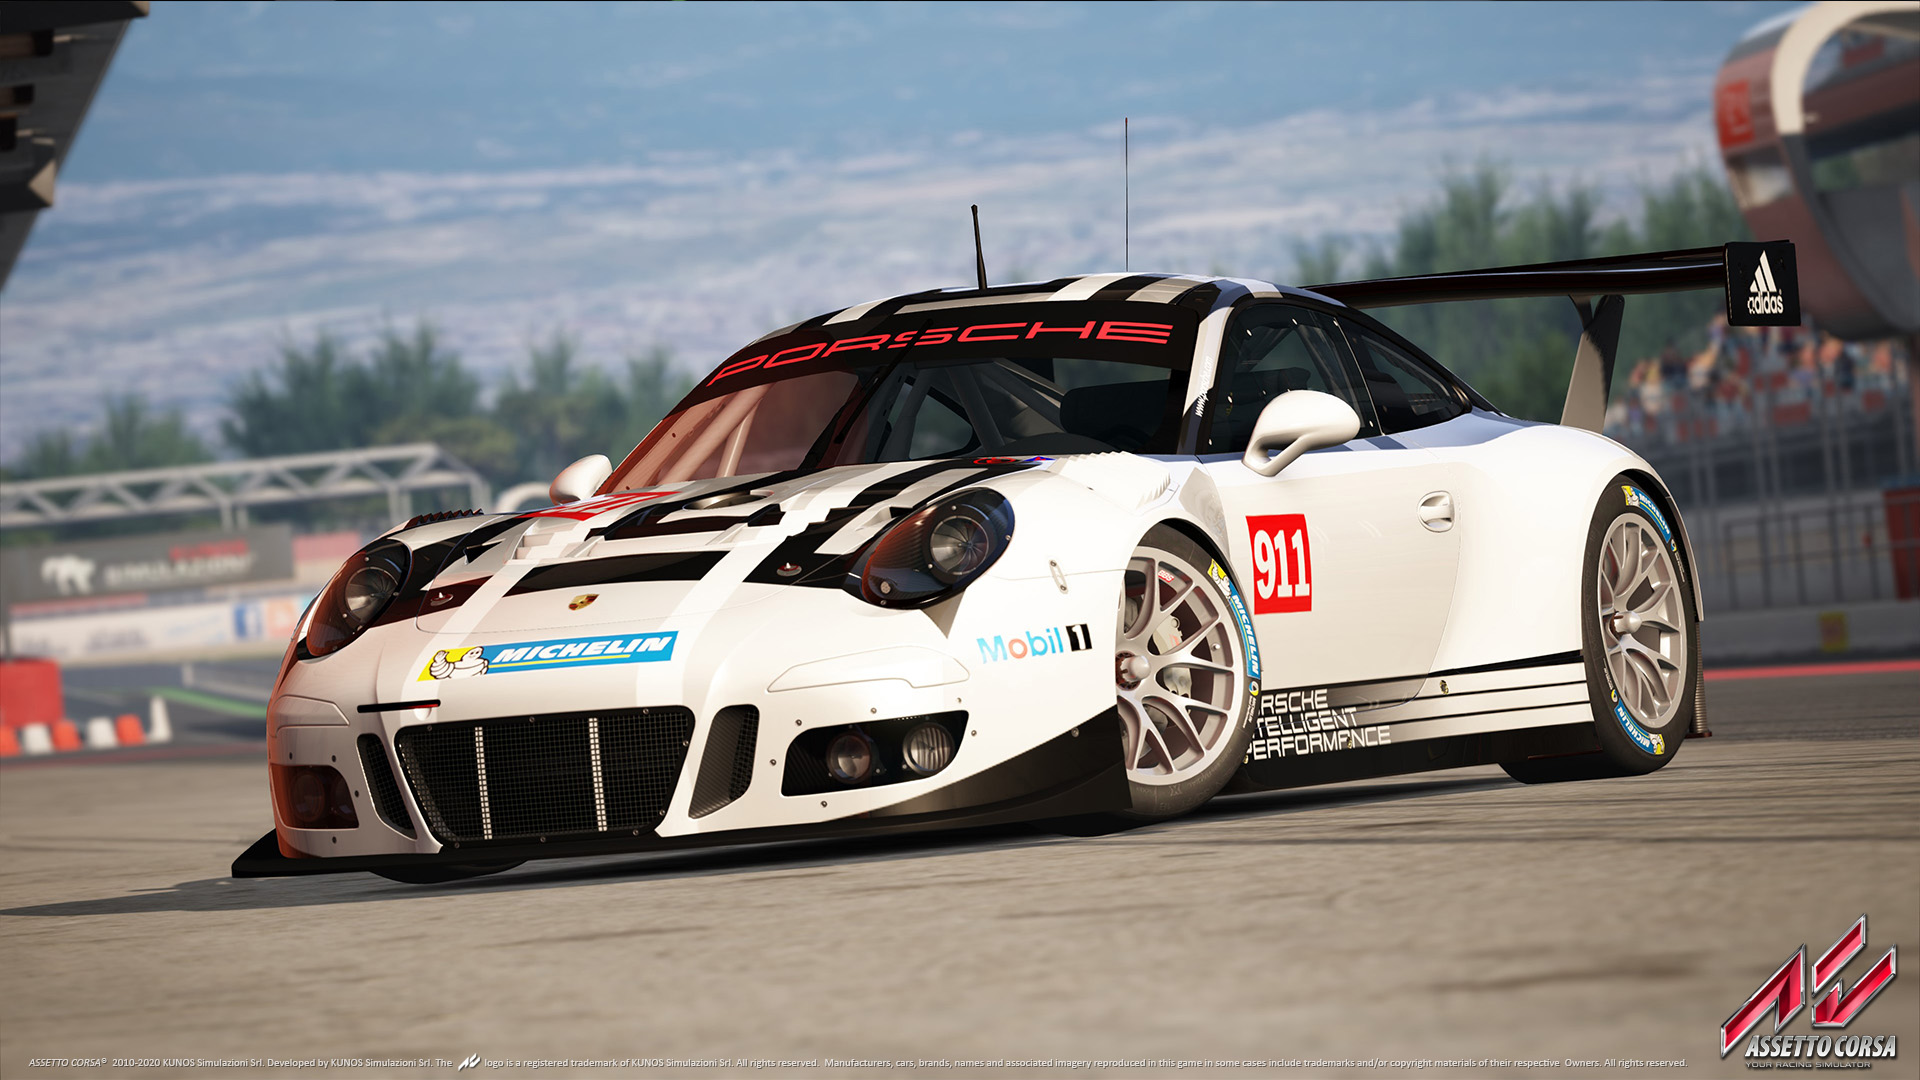 assetto corsa updated for playstation 4 porsche iii dlc released. Black Bedroom Furniture Sets. Home Design Ideas